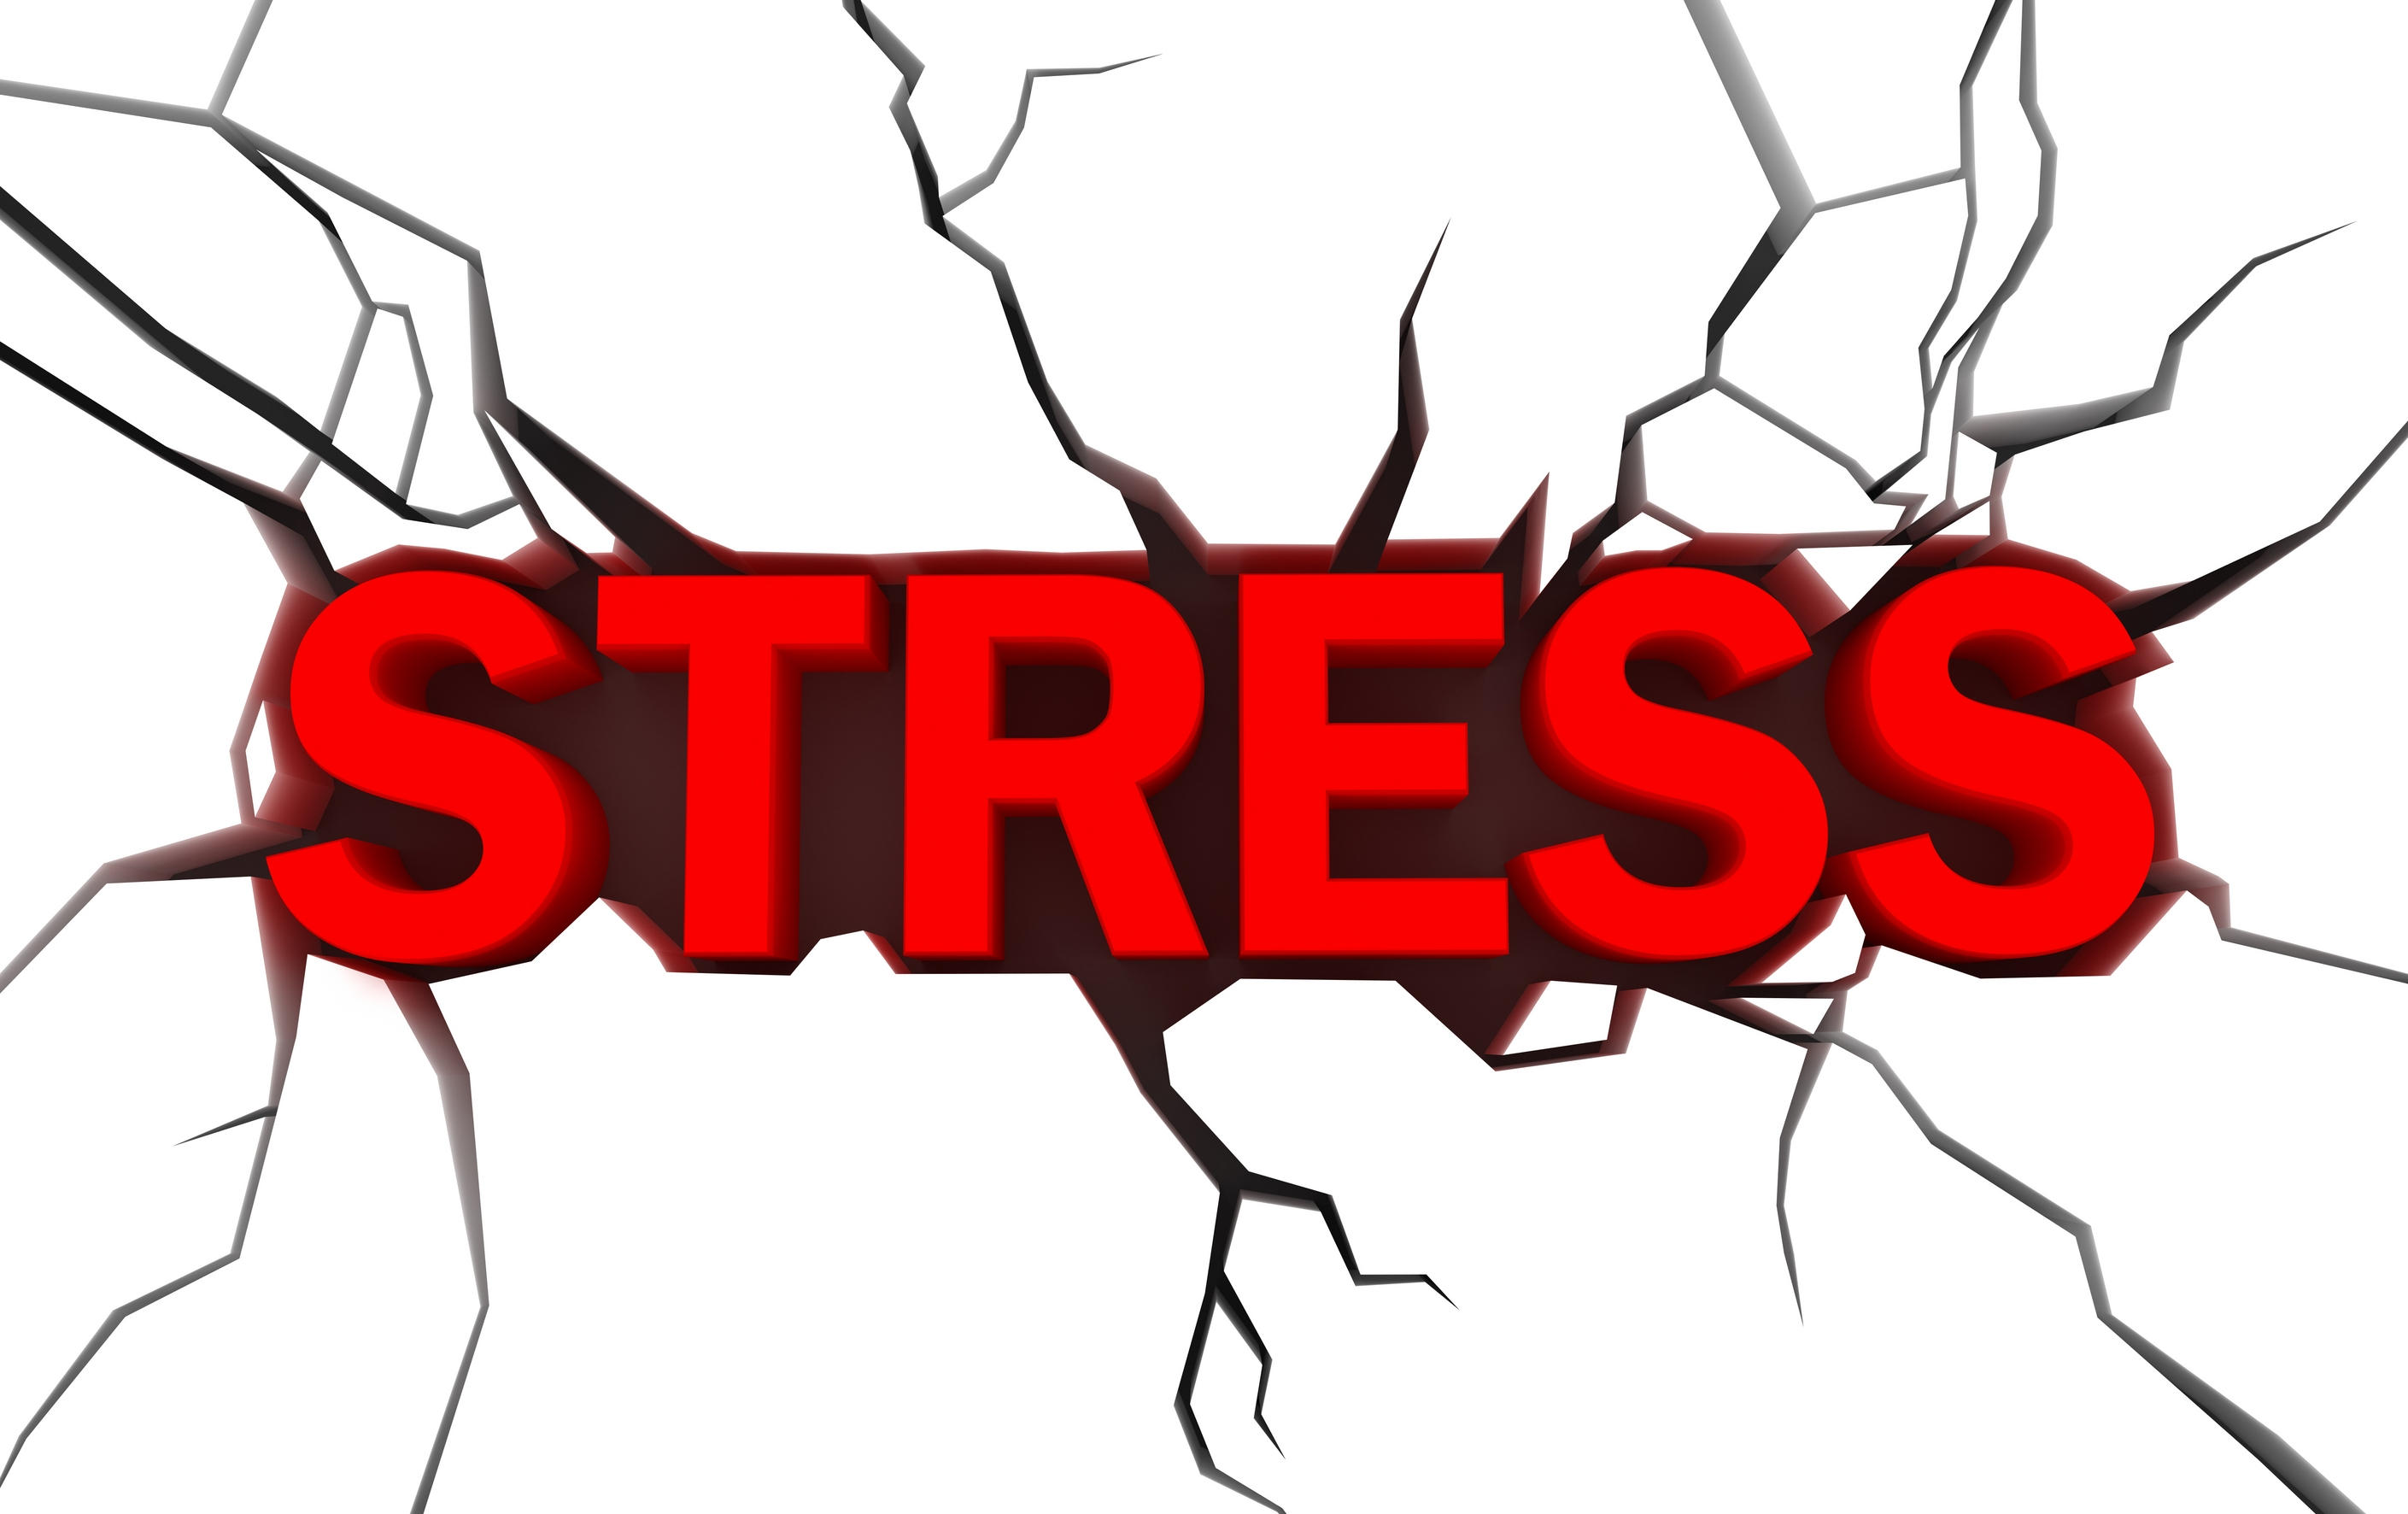 Free stressed out images. Stress clipart stress reliever